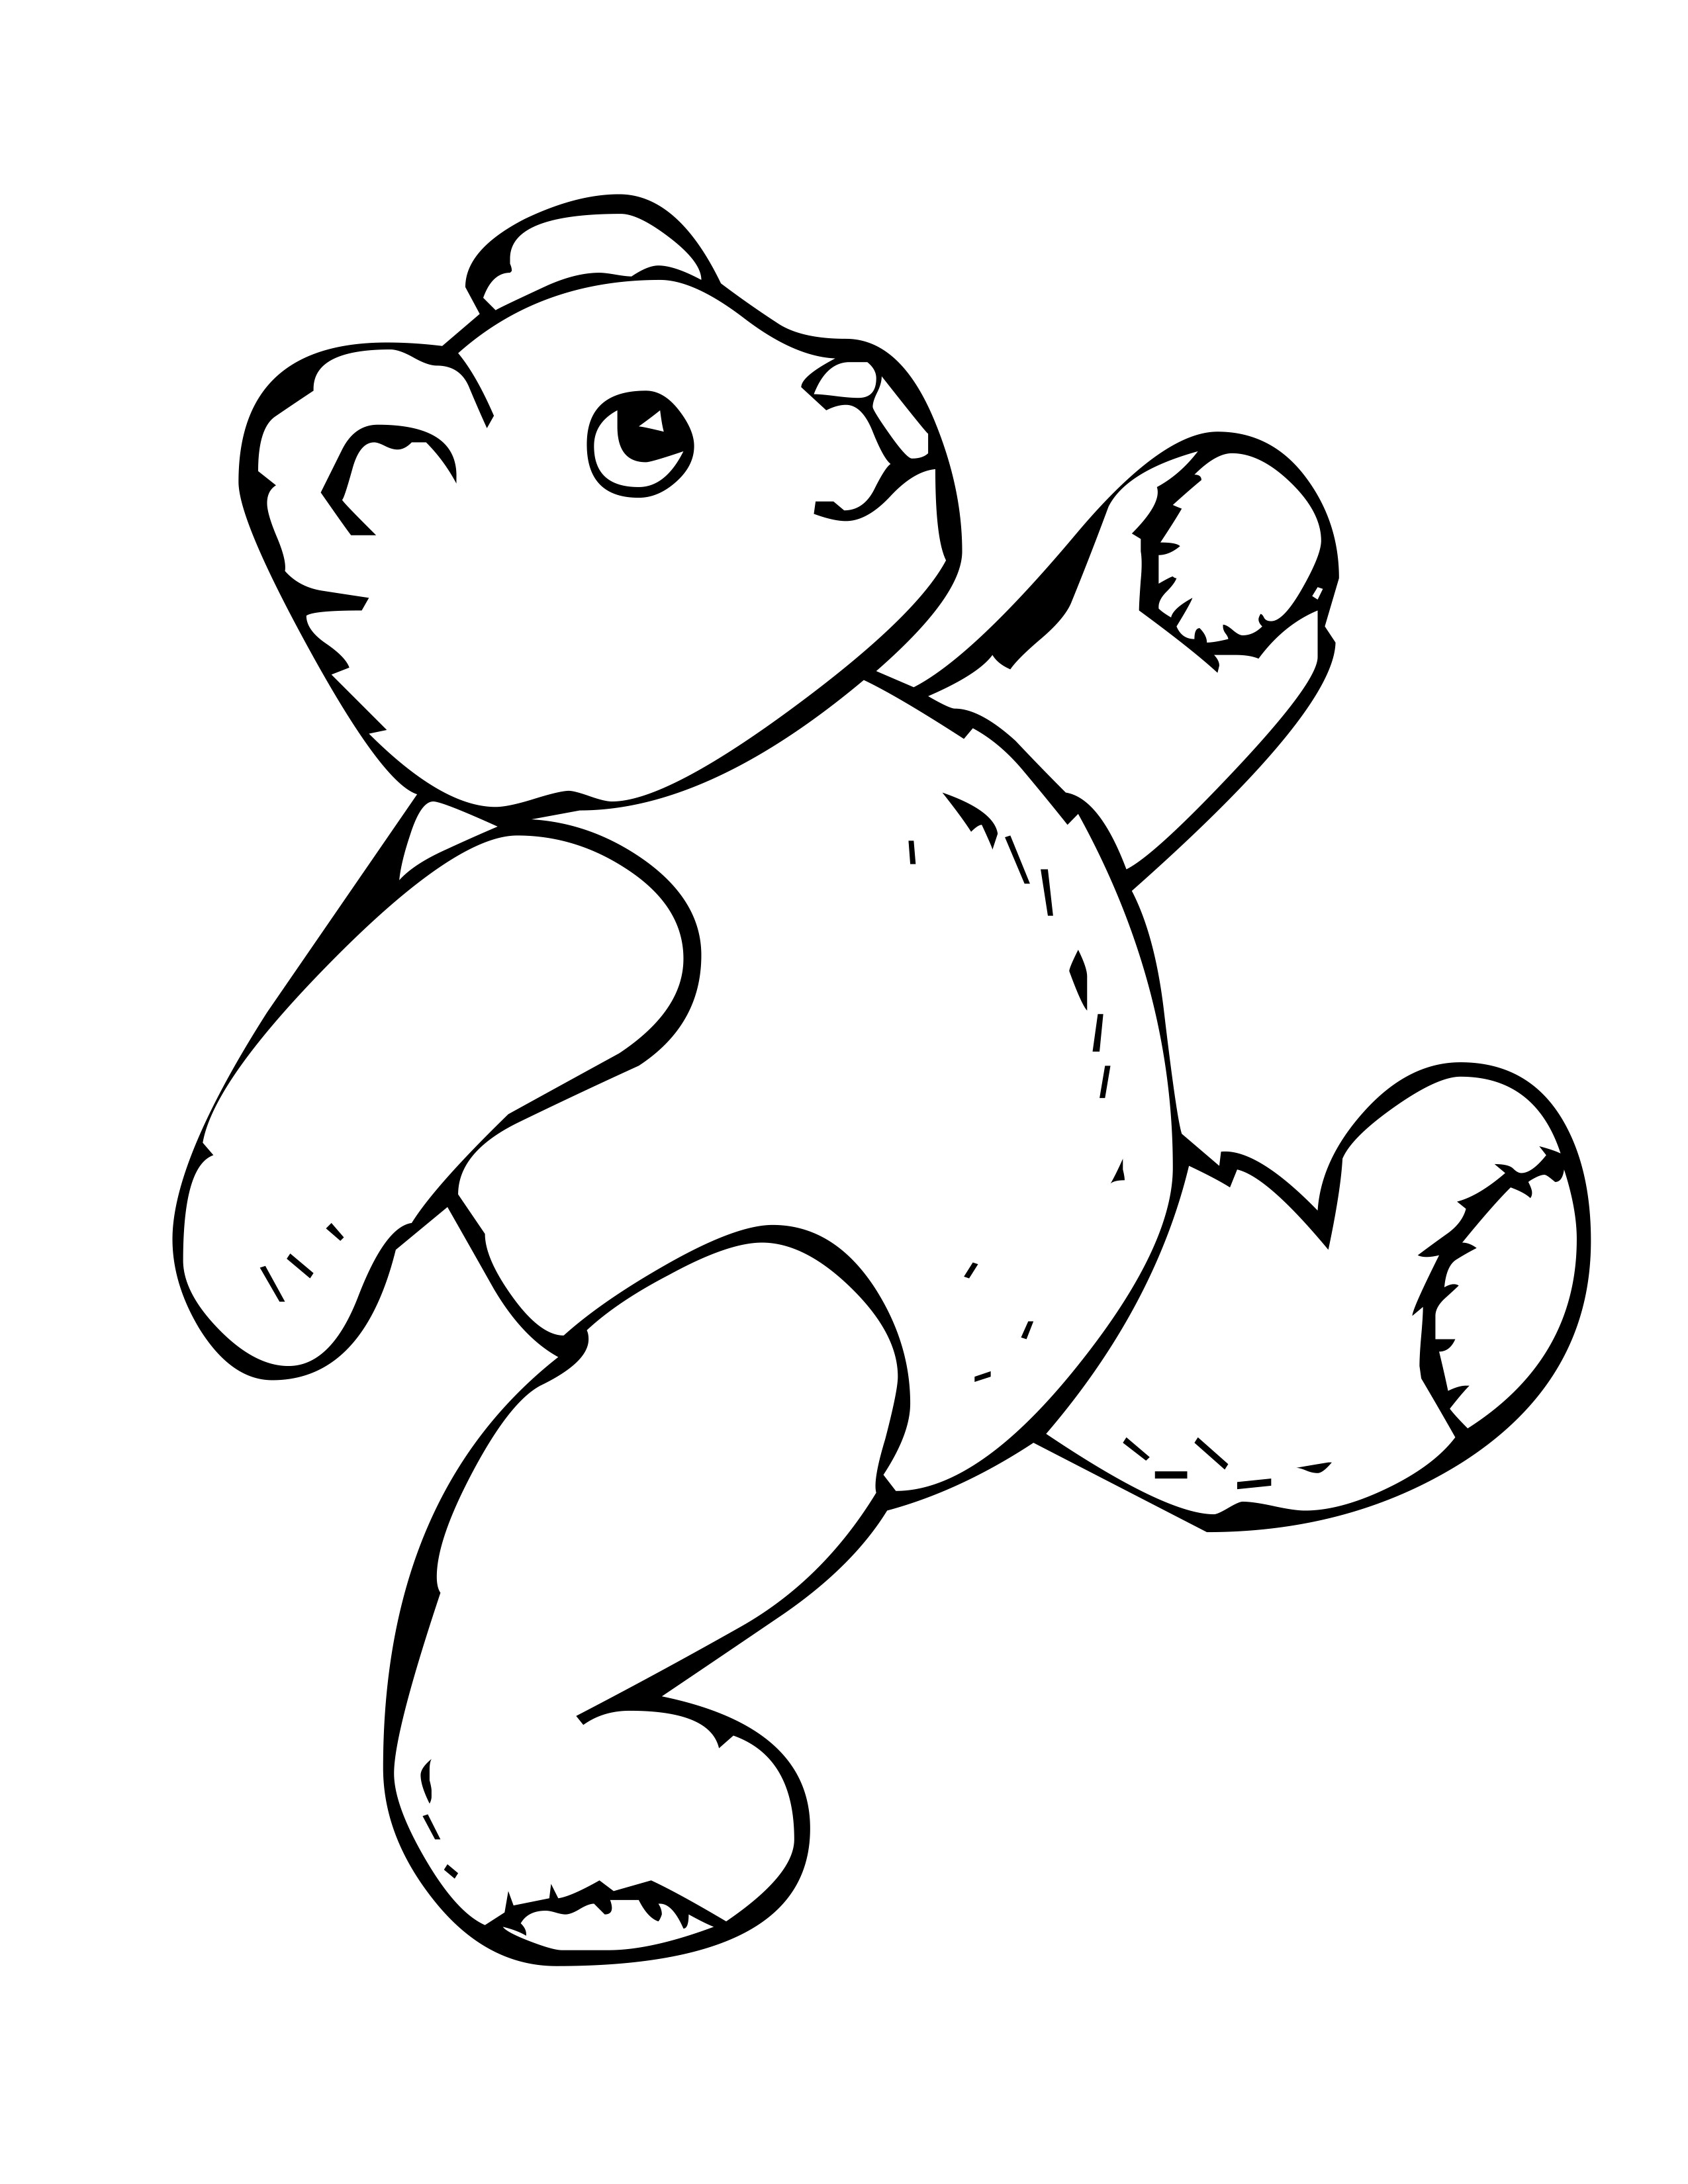 coloring pages of bears brown bear coloring pages coloring pages for kids coloring bears pages of